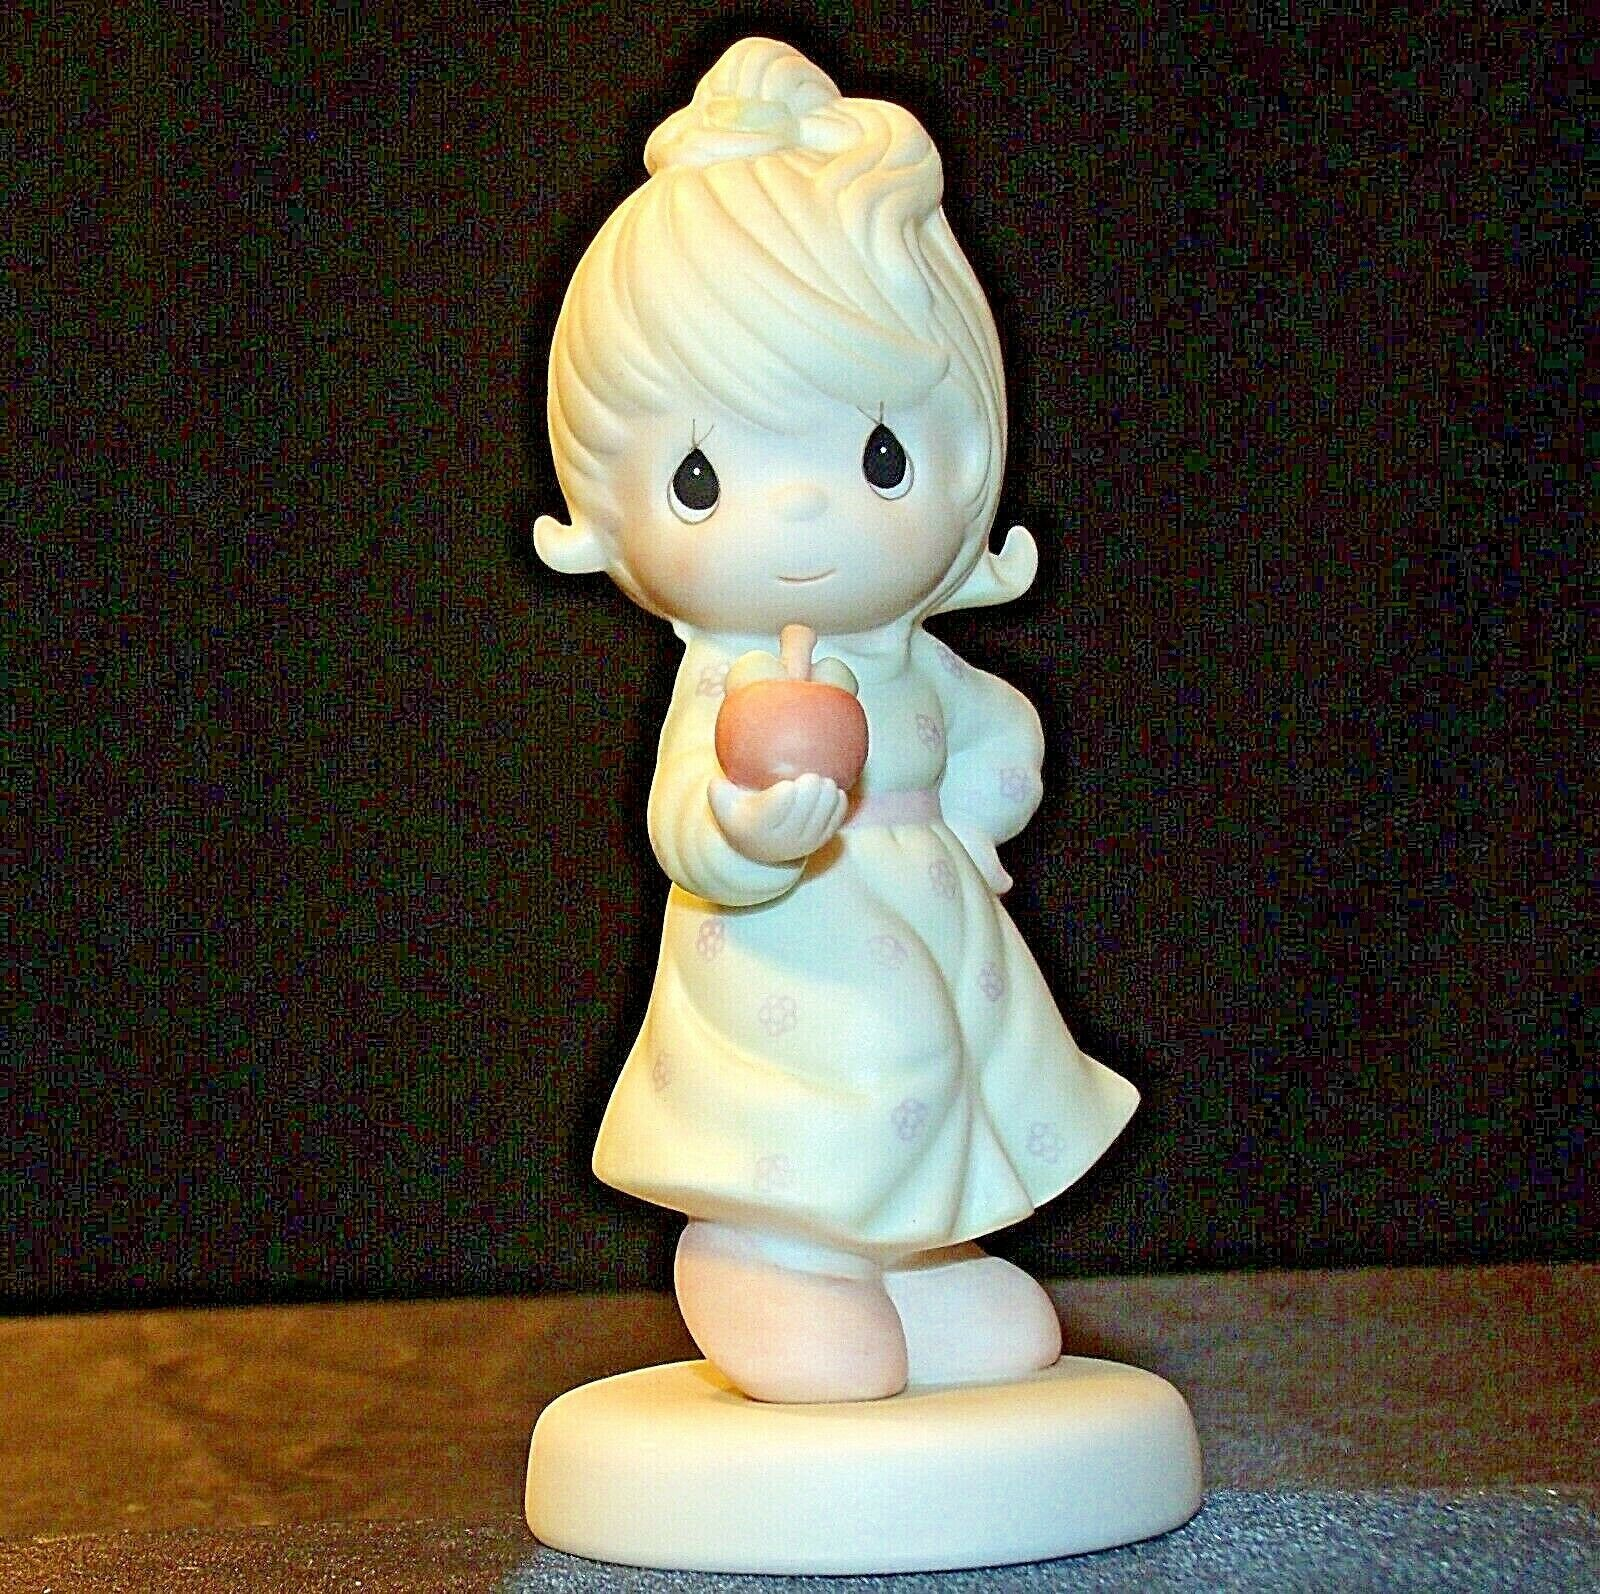 Precious Figurines Moments Yield Not To Temptation 521310 AA-191881  Vintage Col